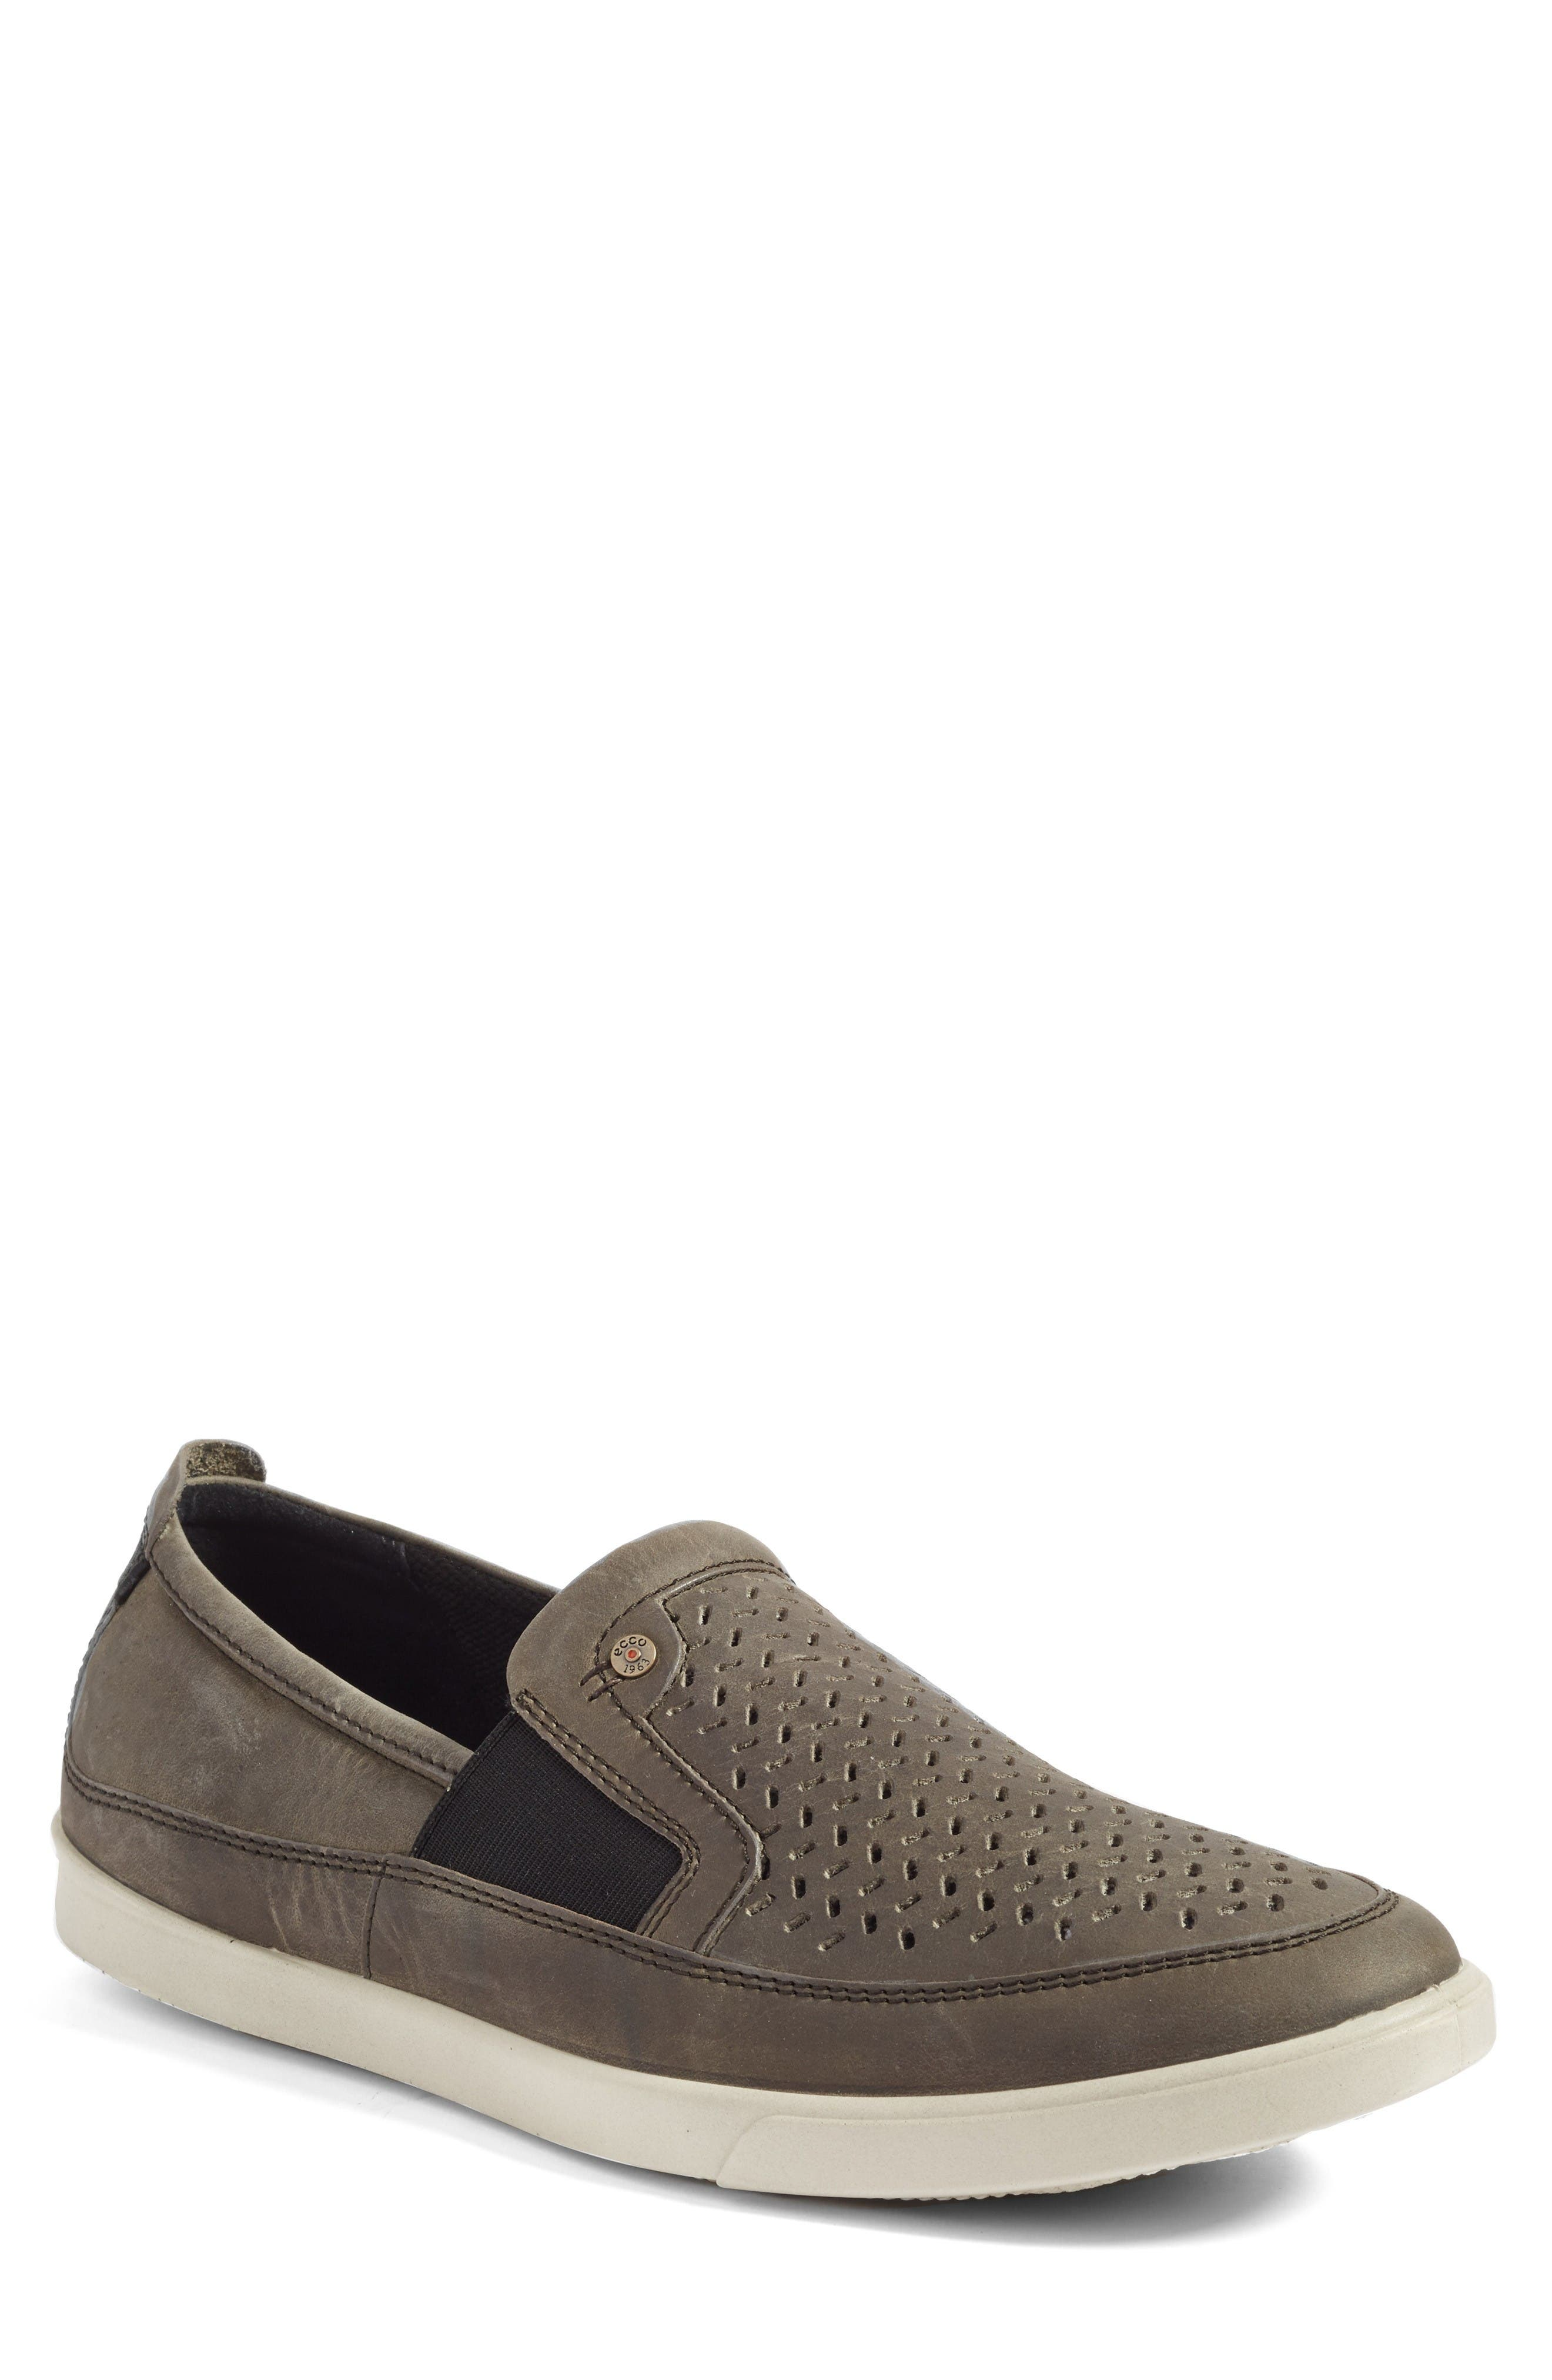 Alternate Image 1 Selected - ECCO 'Collin' Perforated Slip On Sneaker (Men)